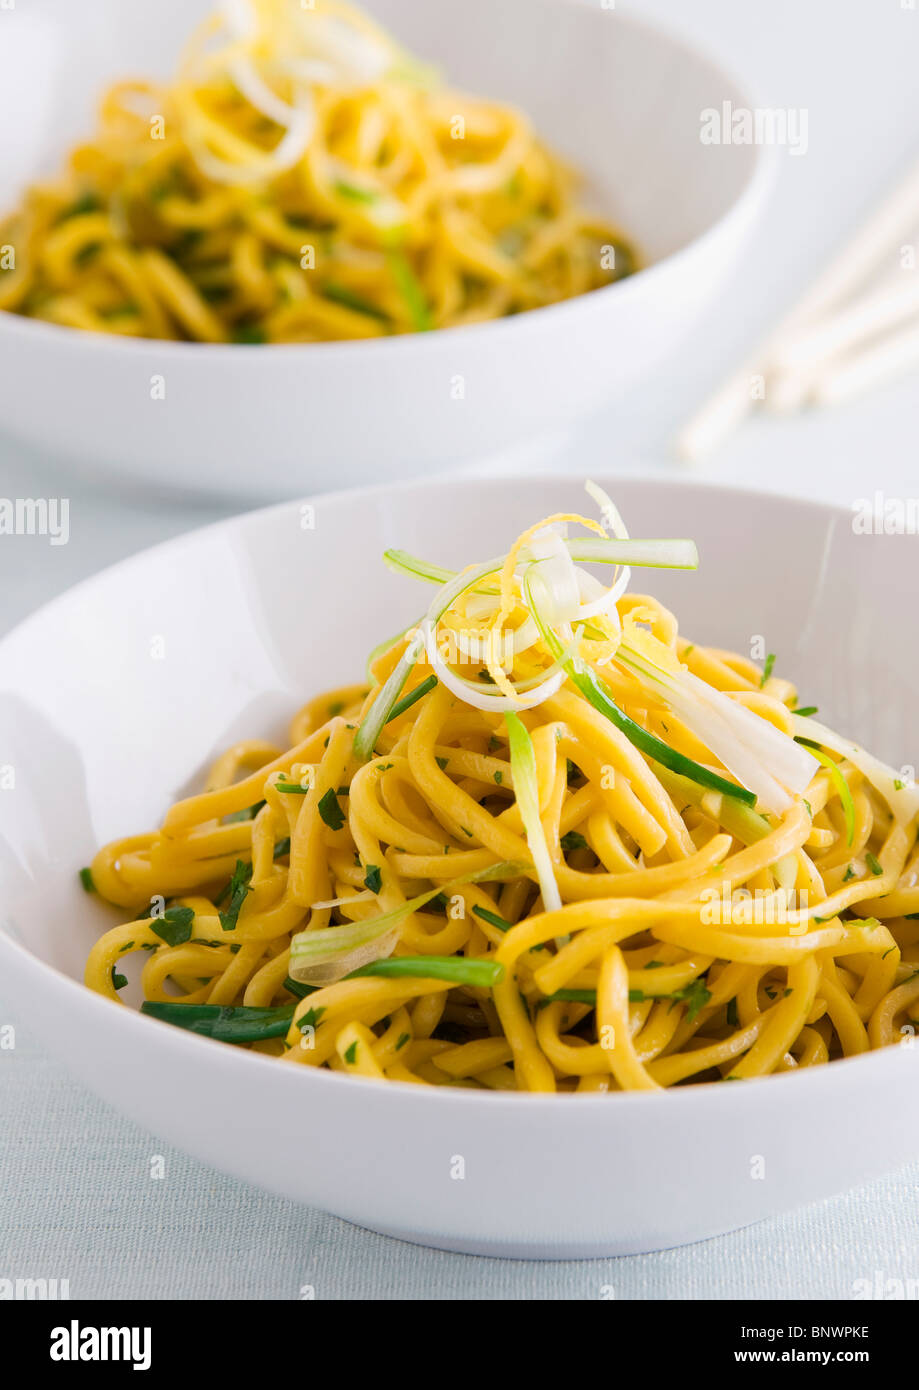 Plain egg noodles - Stock Image